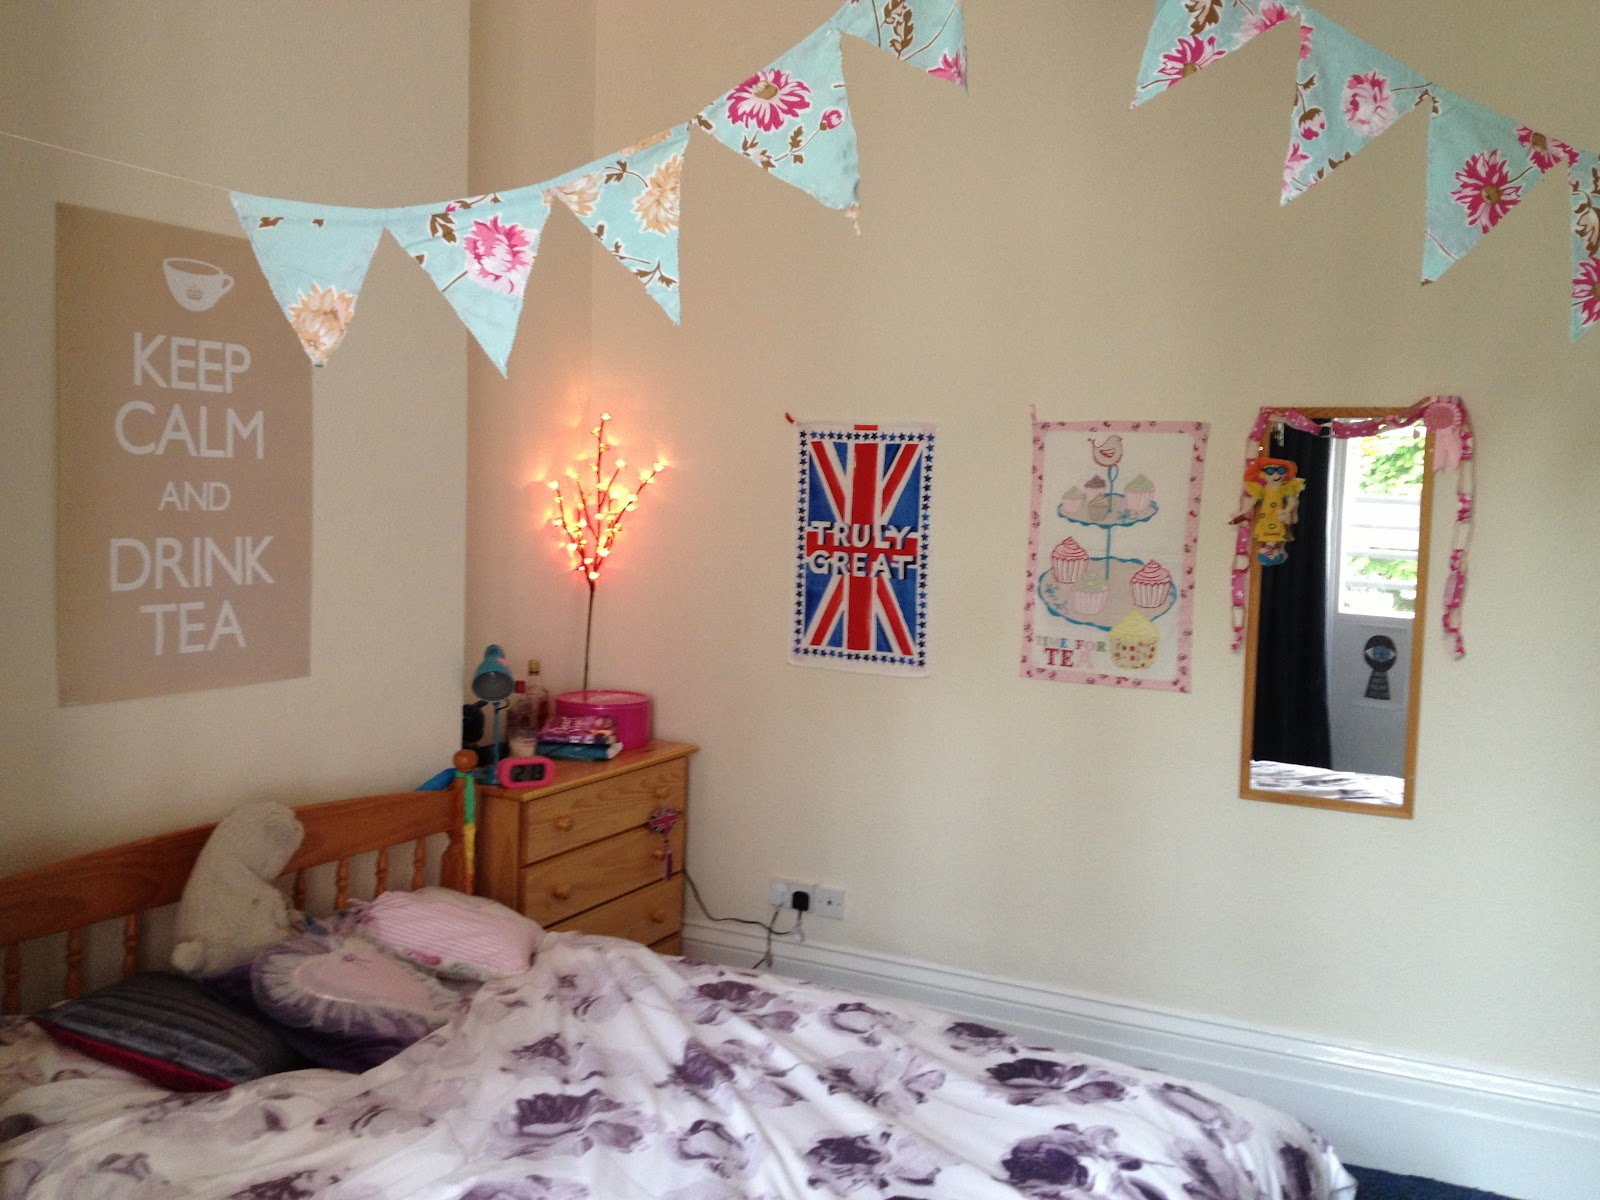 The twenty best ways to decorate your student room at uni ...